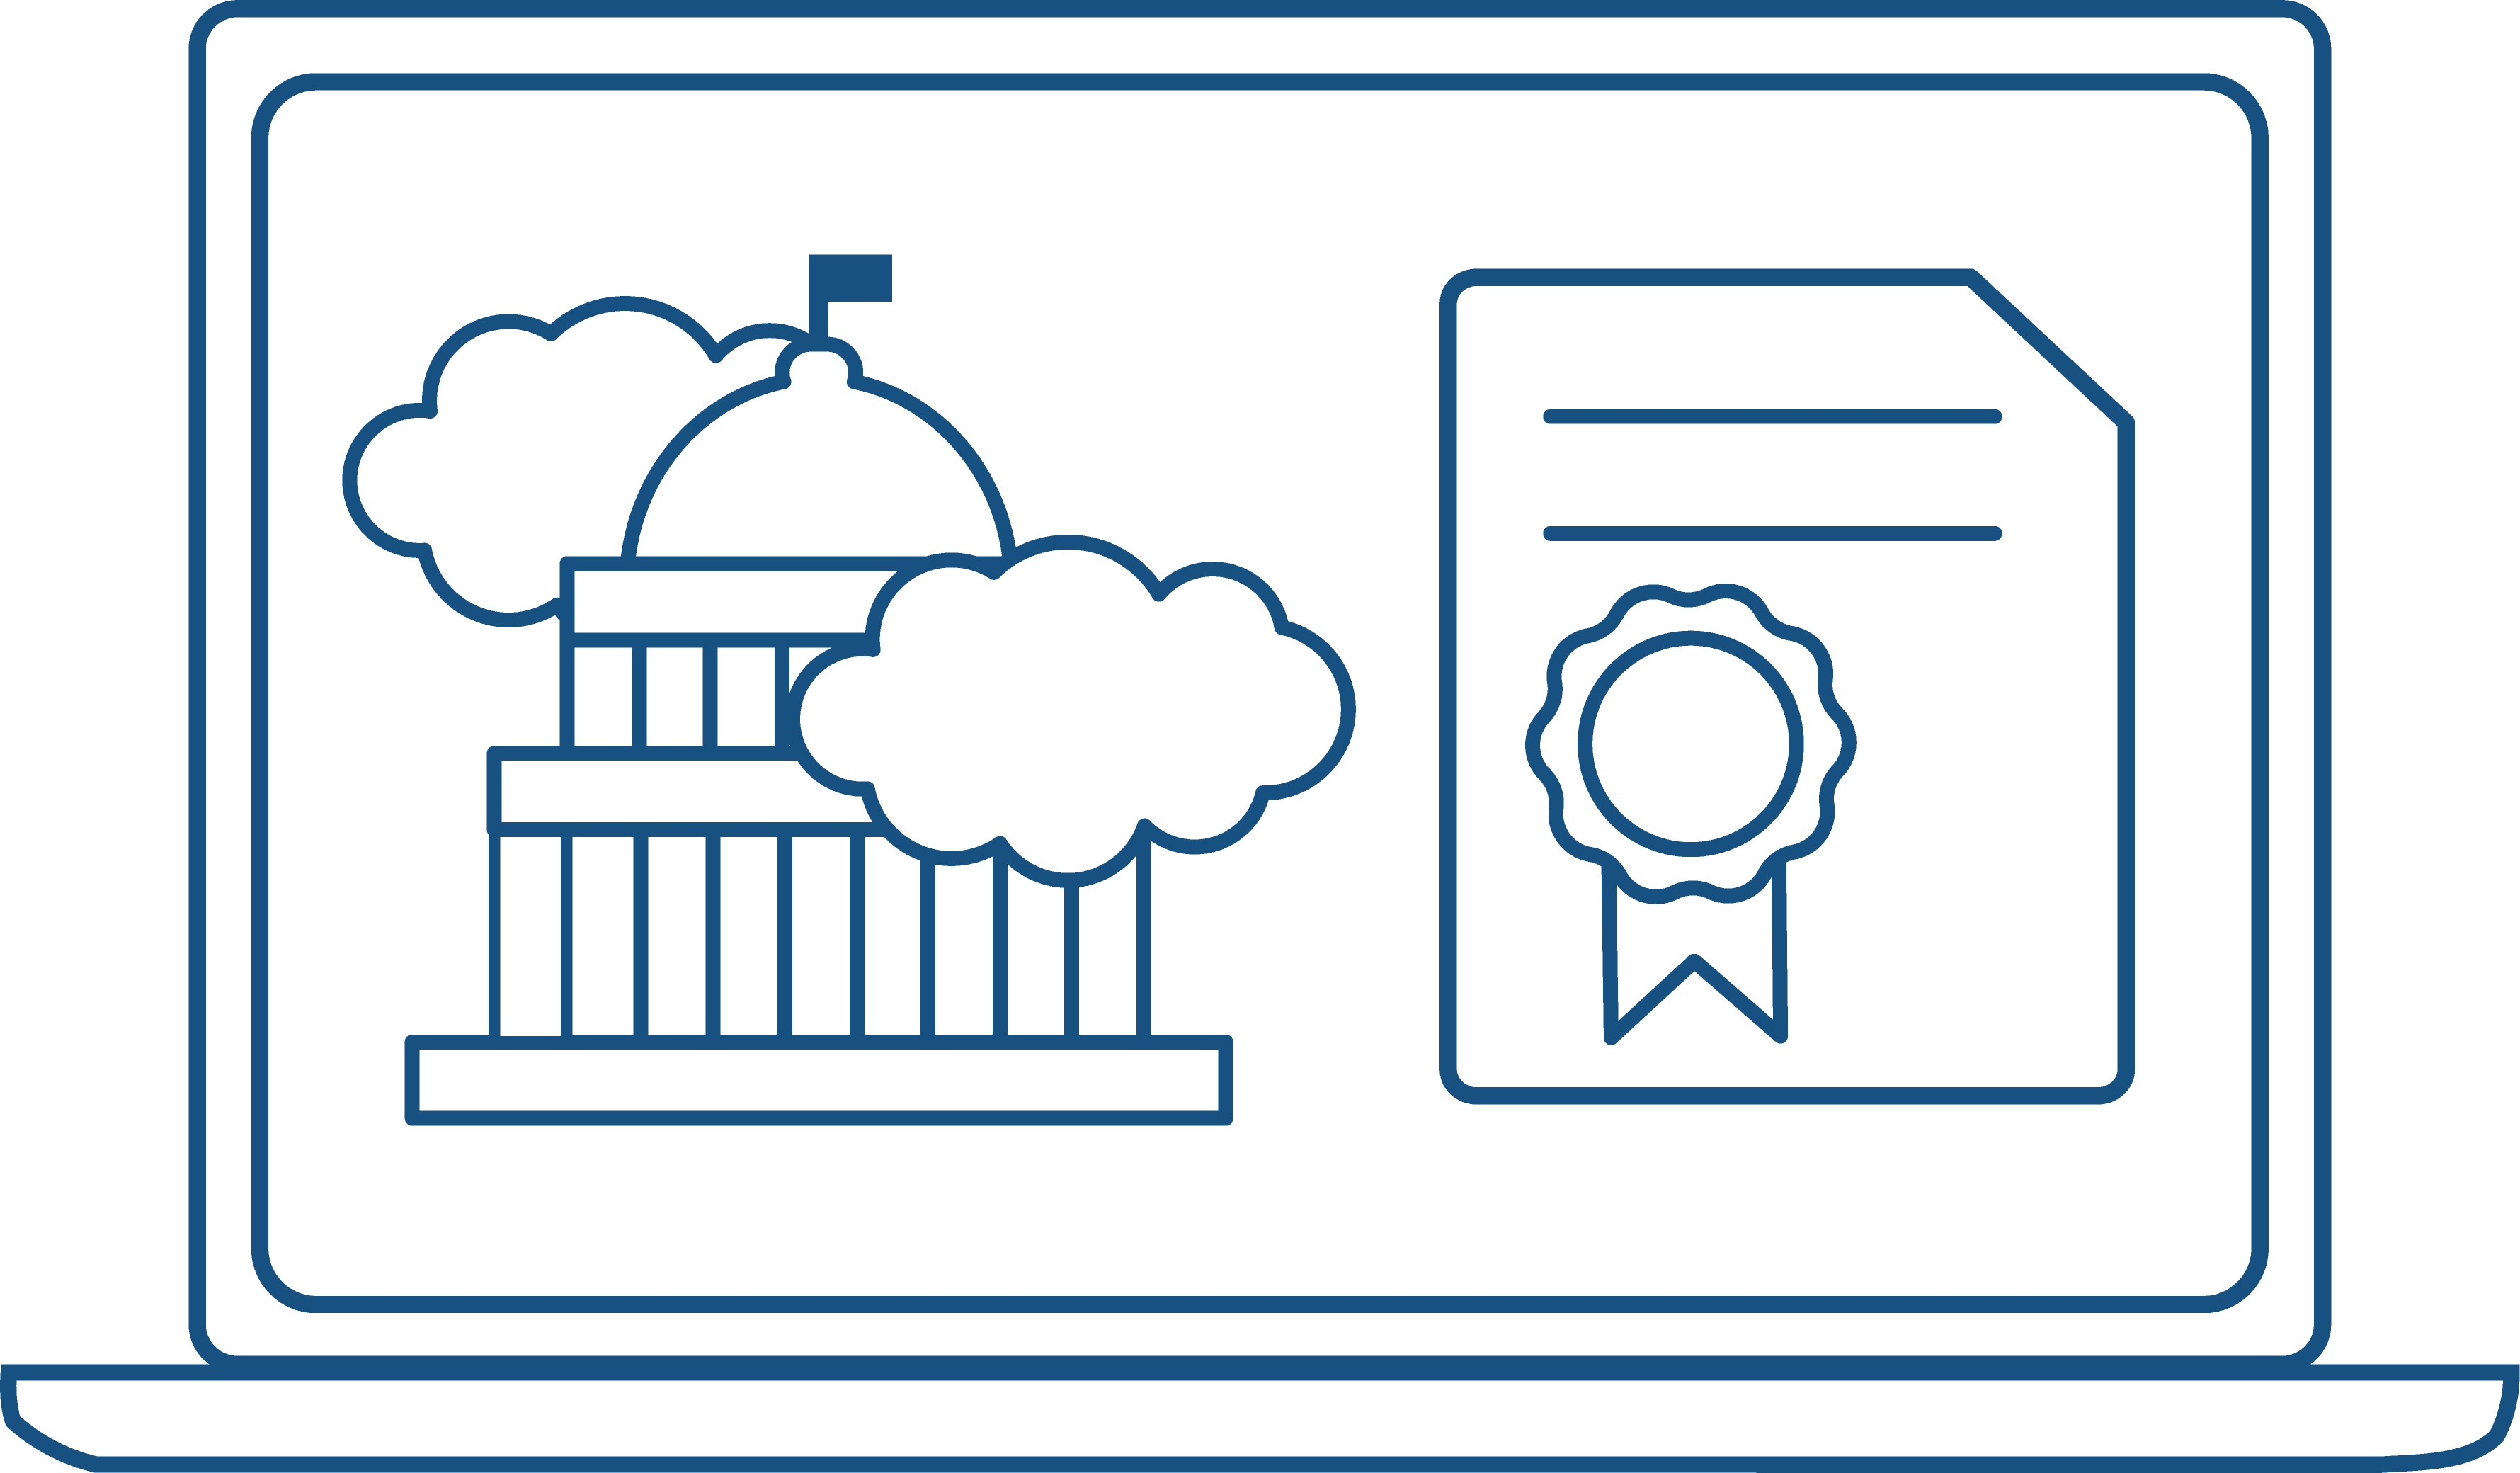 Do you have government domain knowledge? Are you Salesforce-certified